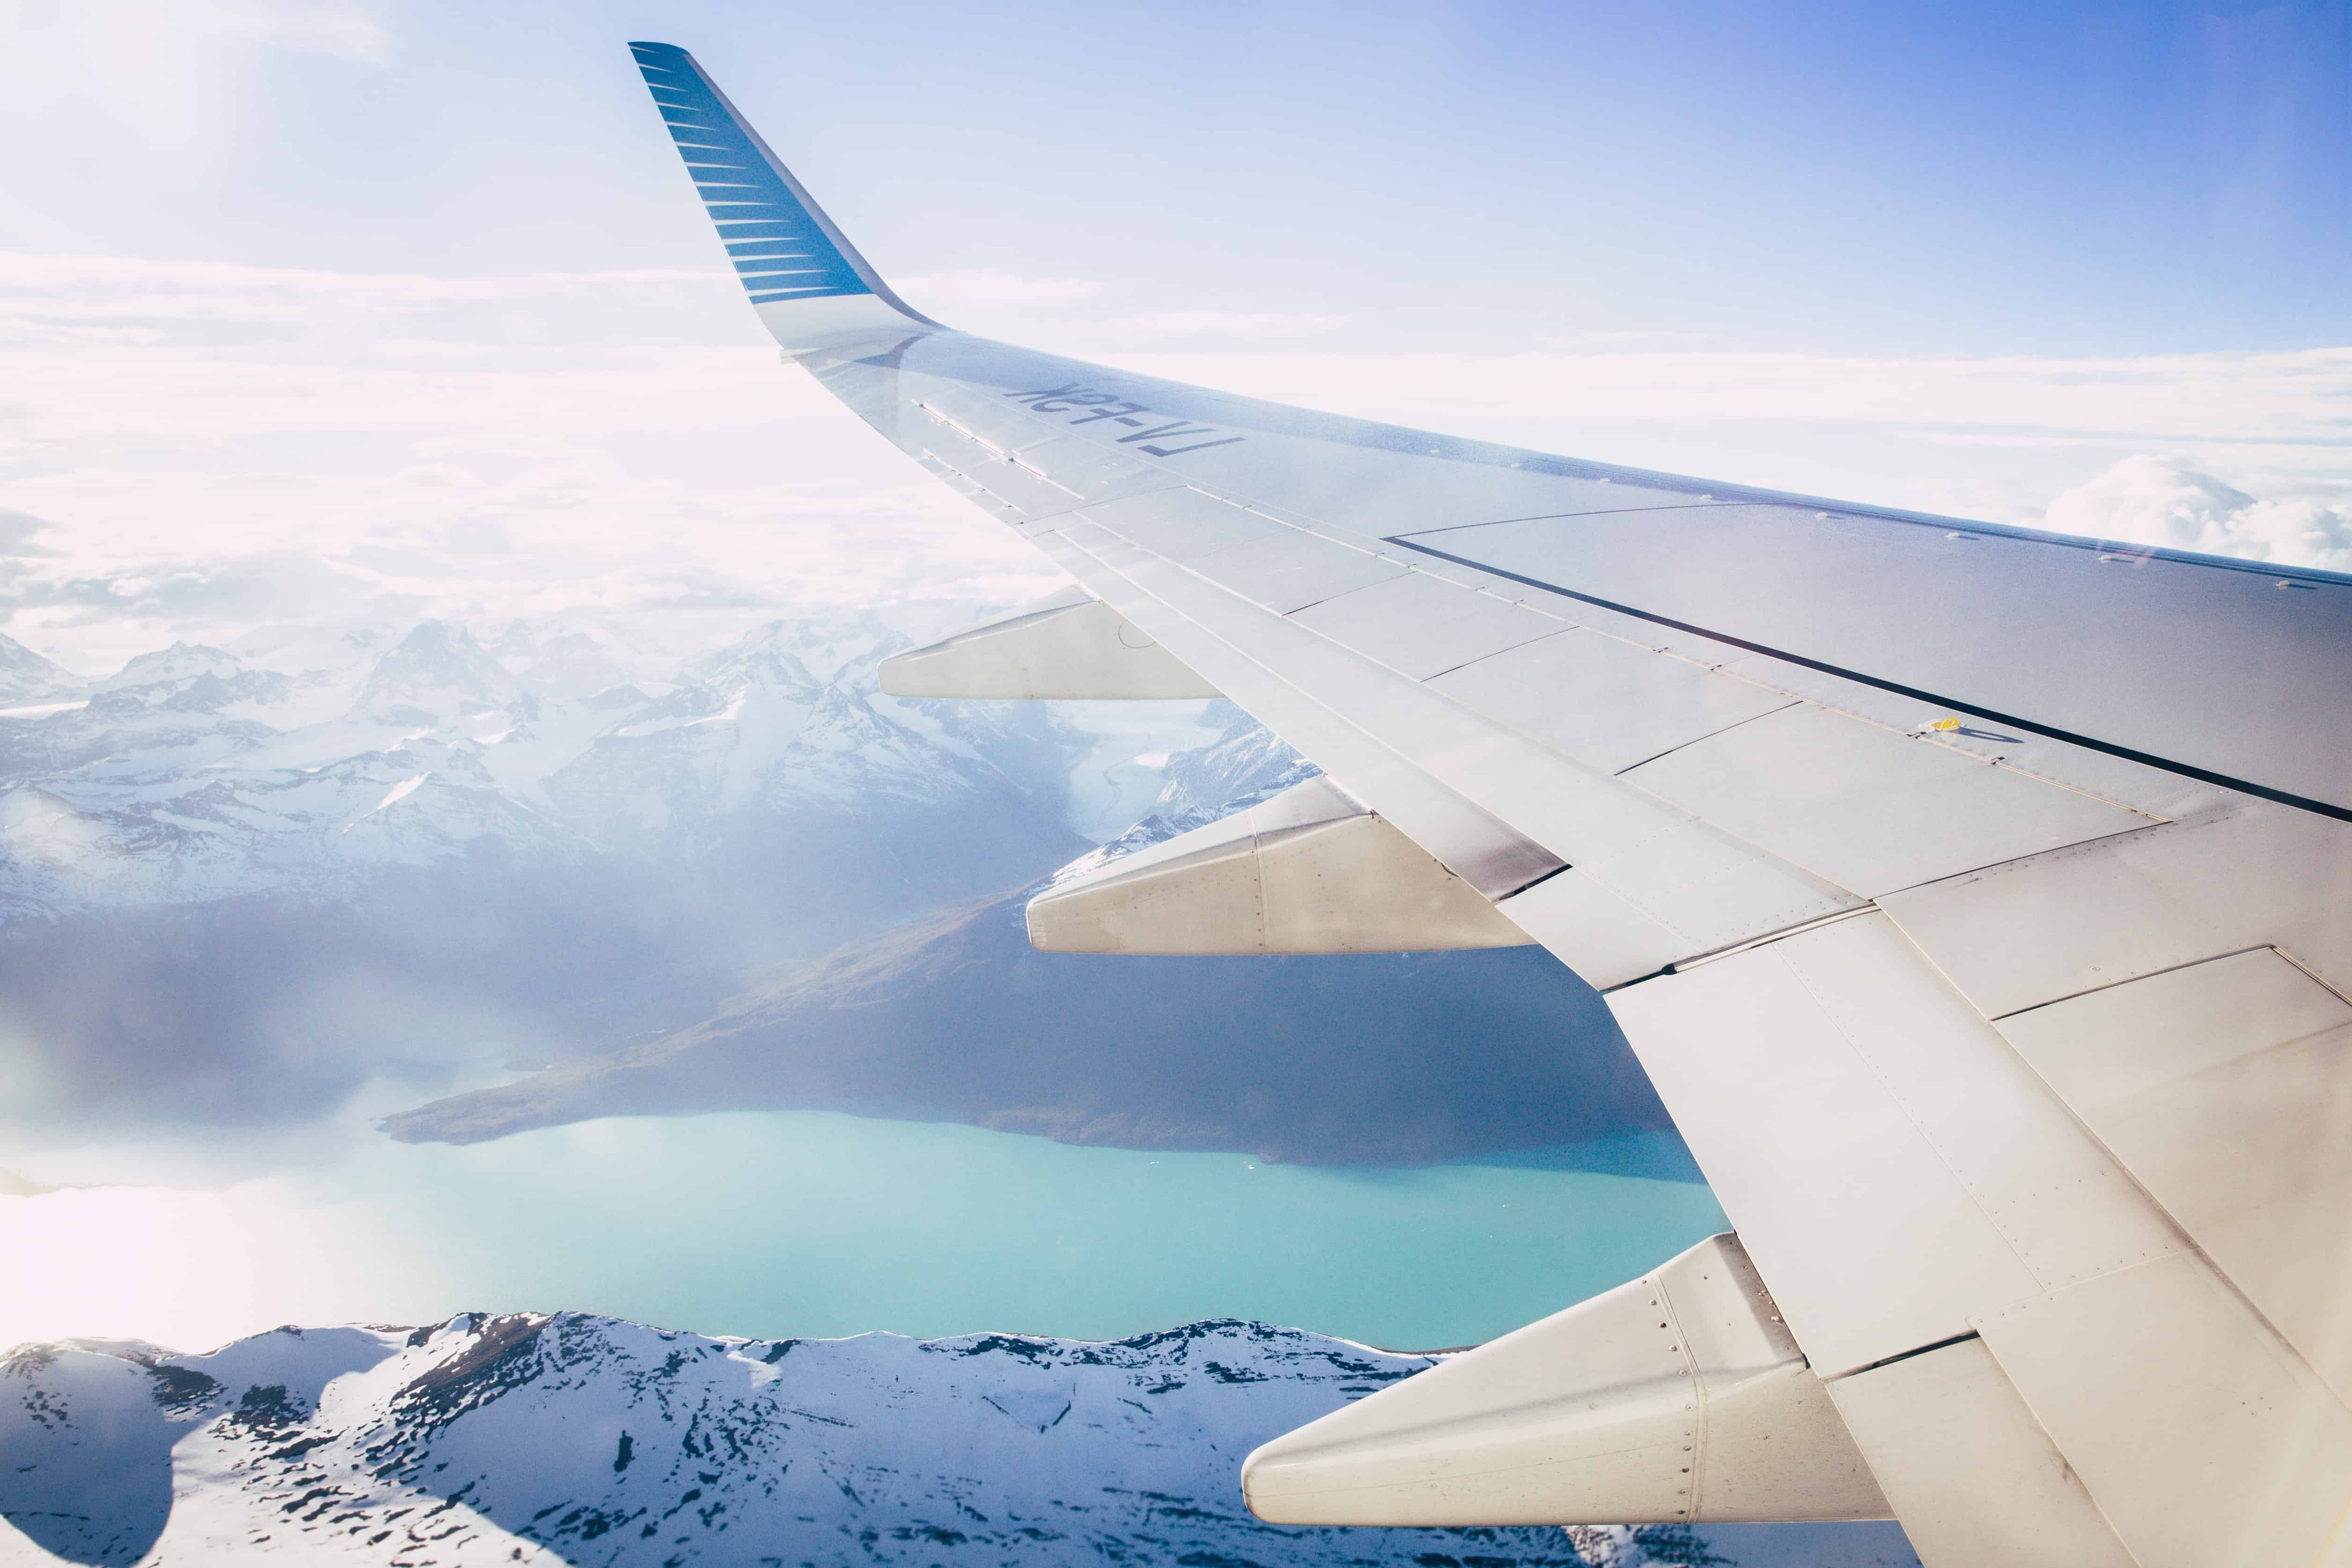 Fear of flying phobia is common. Learn how to overcome fear of flying so you don't let this interfere with your work or family any more. Adventures awaits!